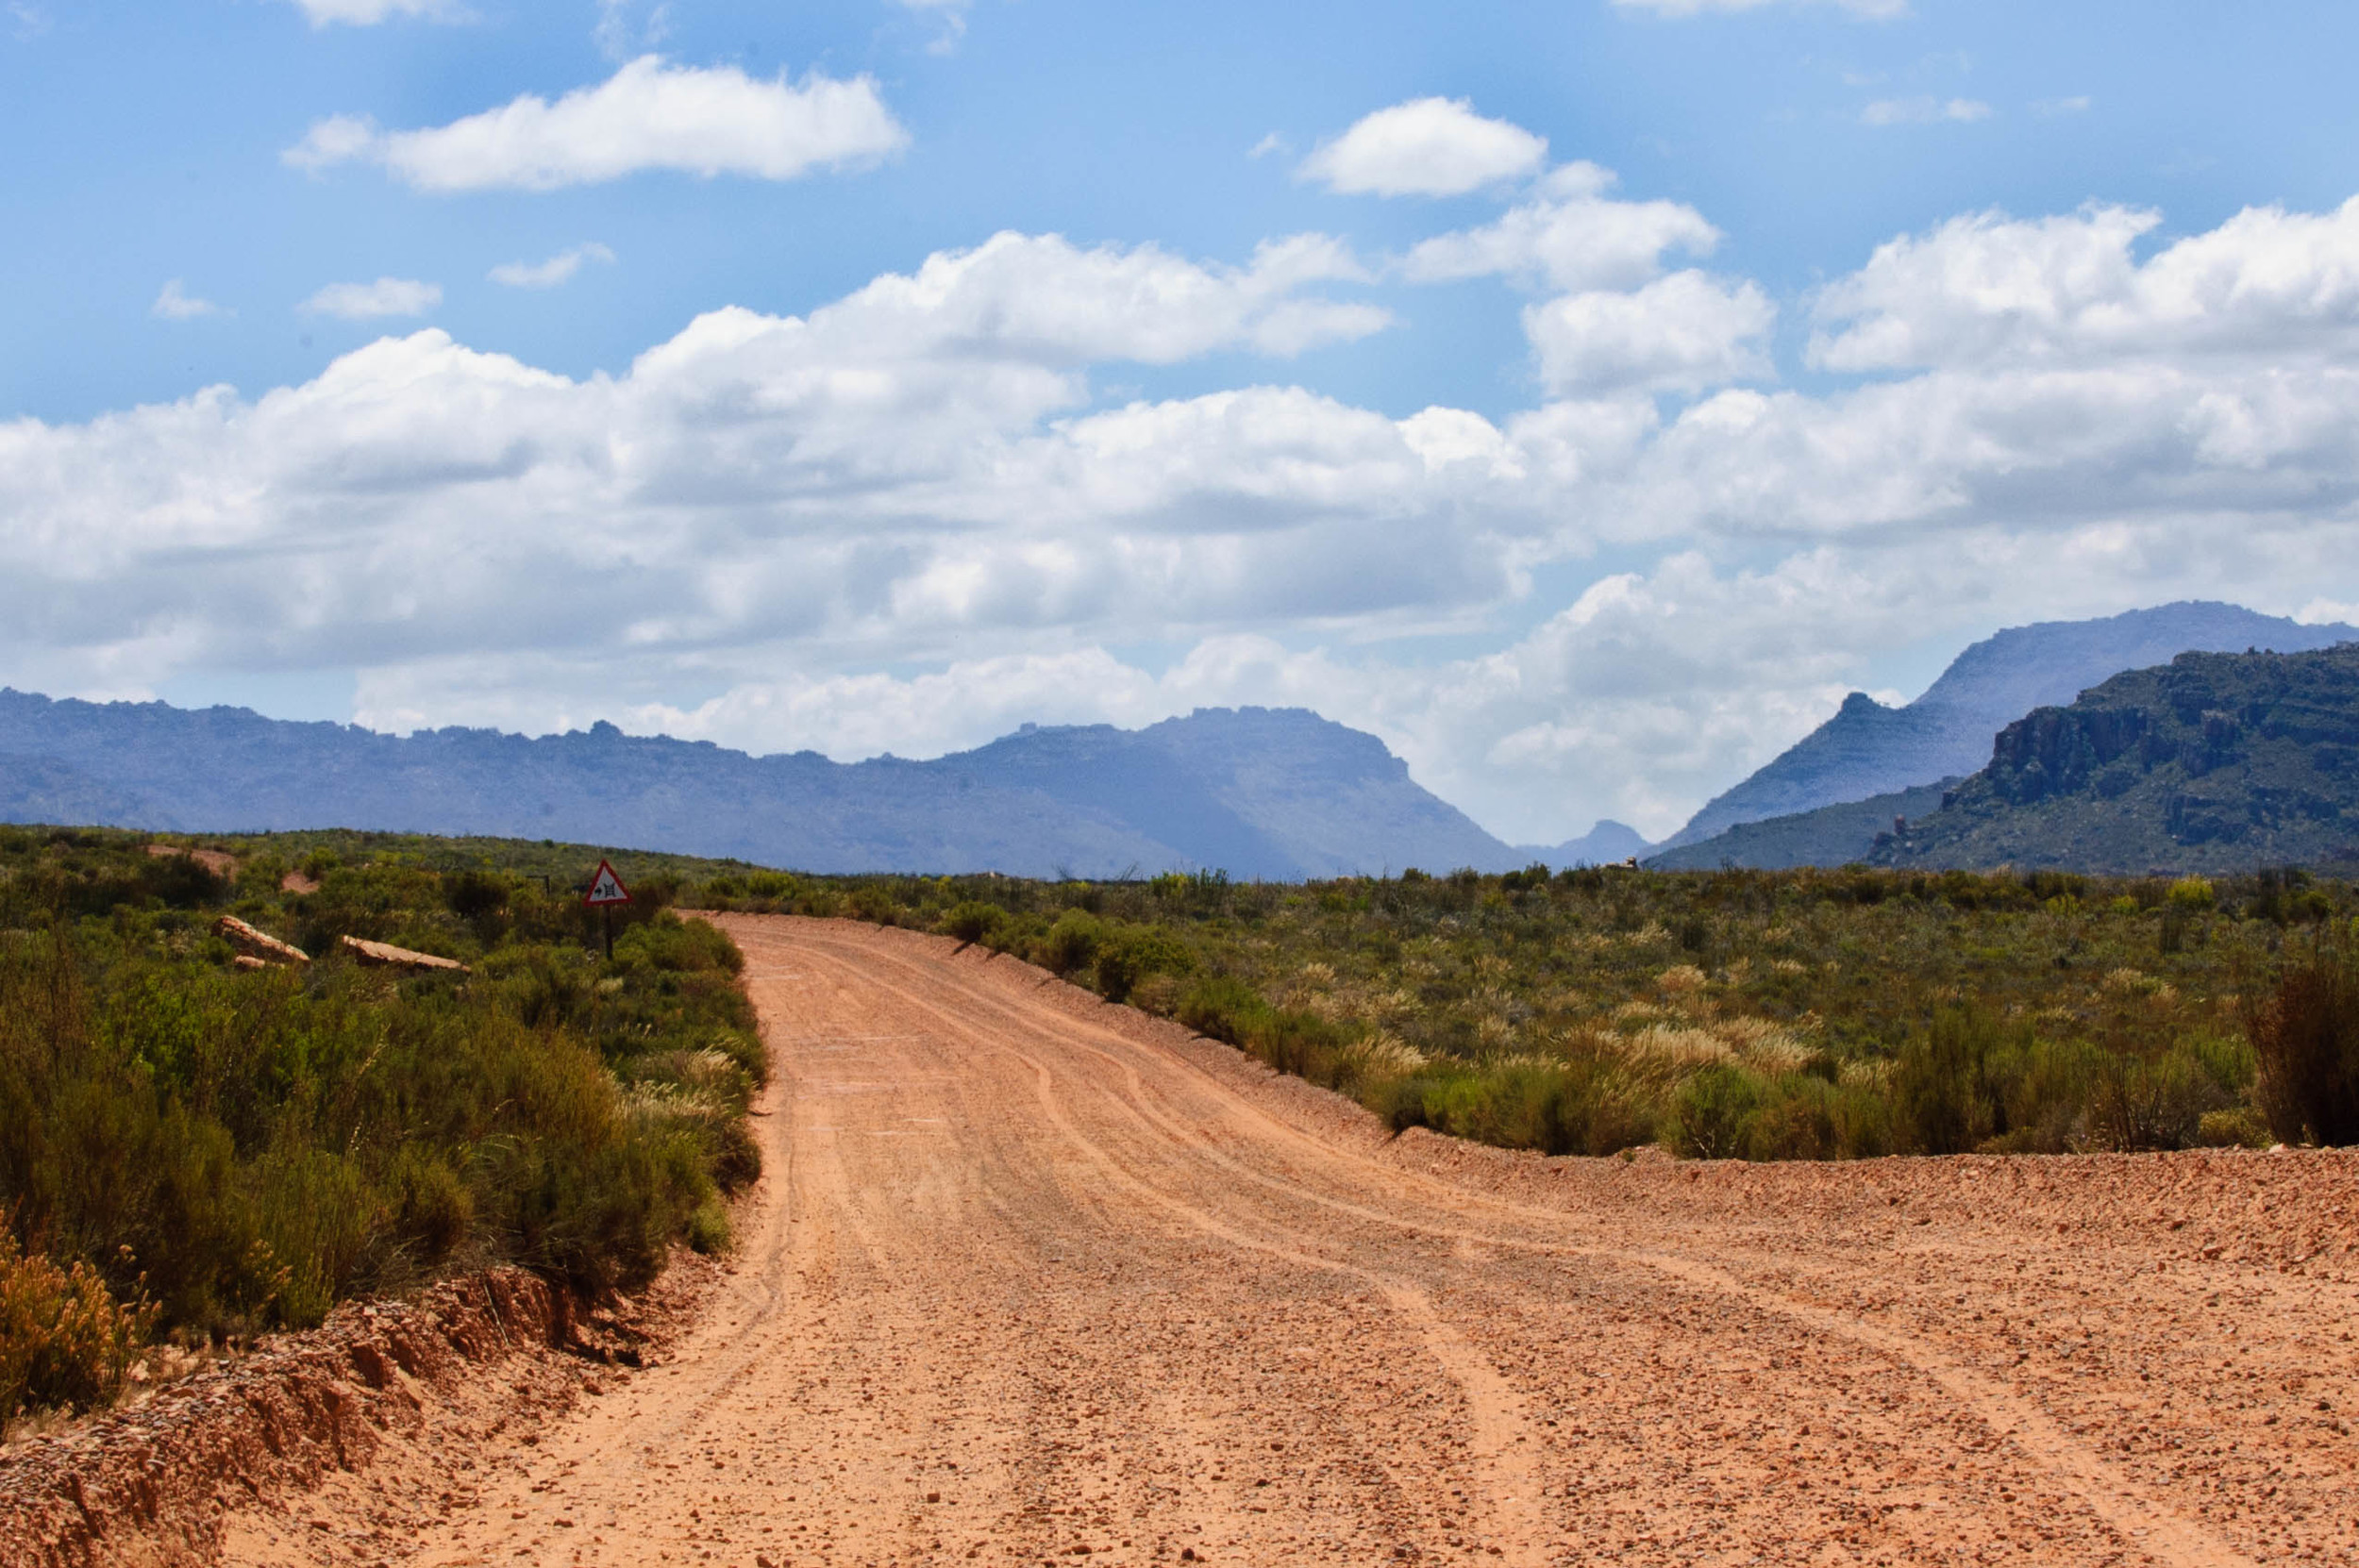 Cederberg Wilderness dirt road, South Africa